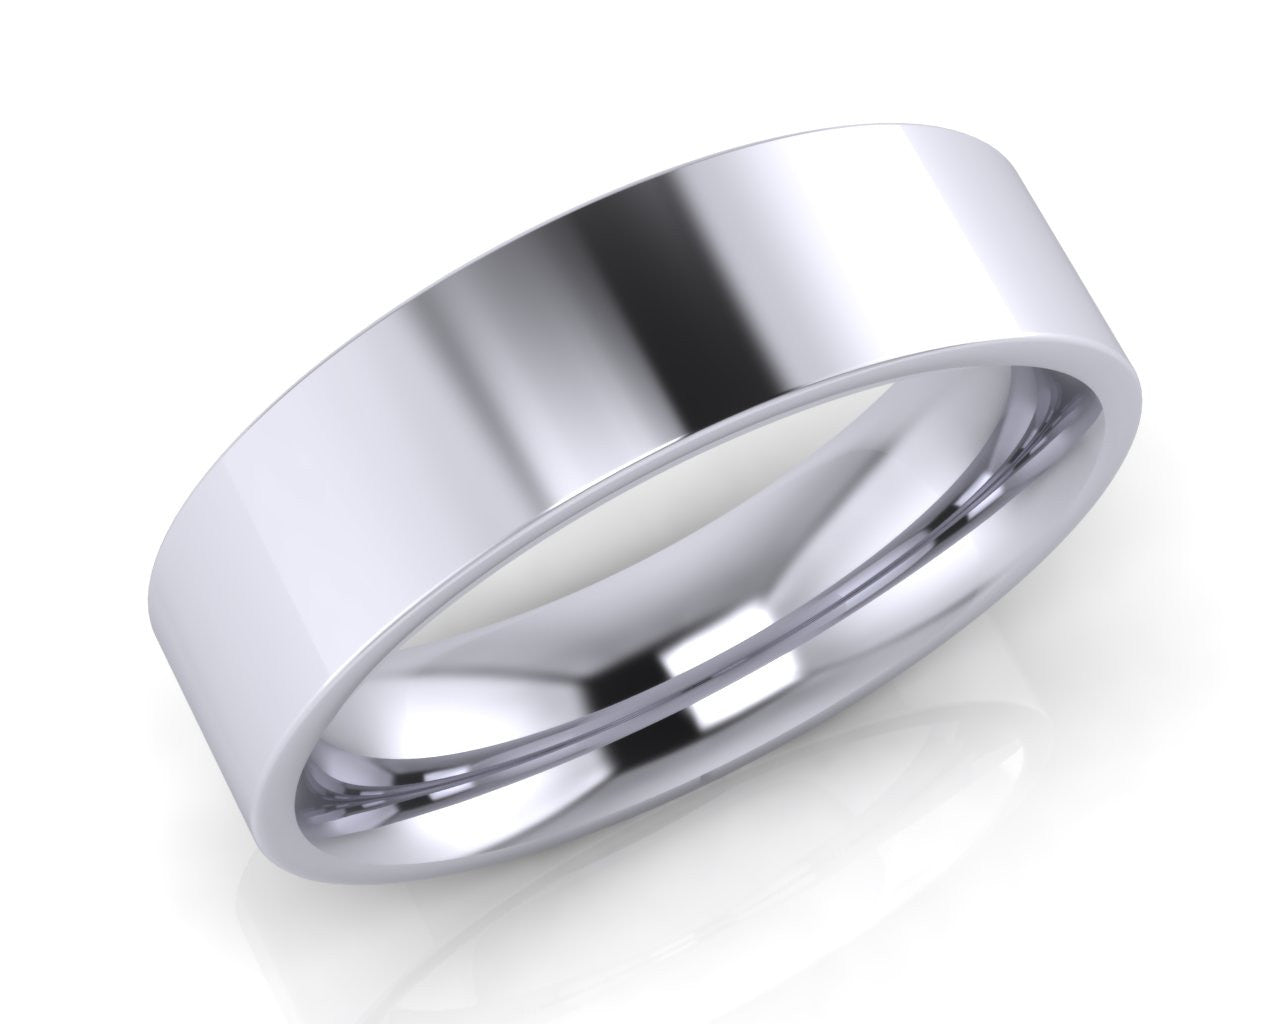 Platinum Demi-Ellipse Wedding Ring 6.0mm Size T - all ring sizes available - Andrew Scott